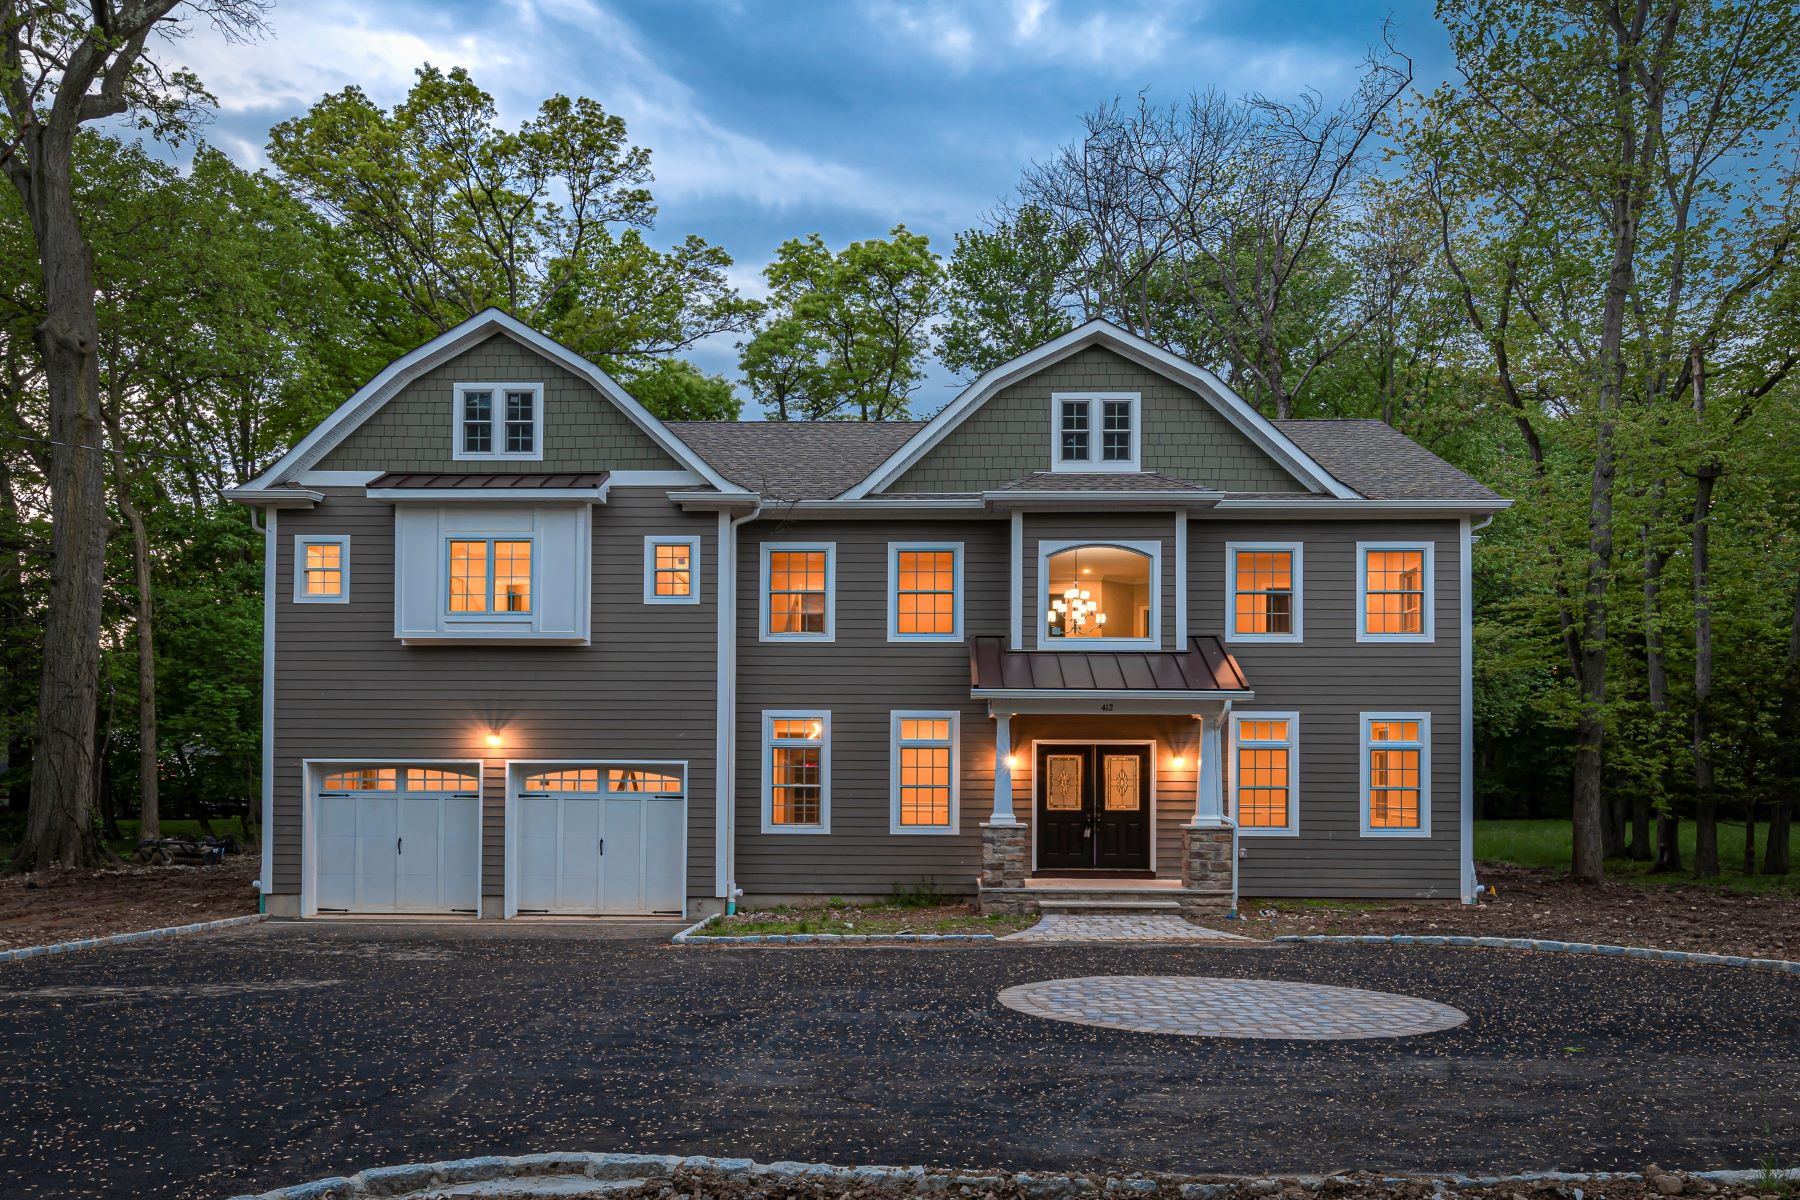 Single Family Homes for Sale at Fabulous New Construction 412 Van Emburgh Ave Ridgewood, New Jersey 07450 United States